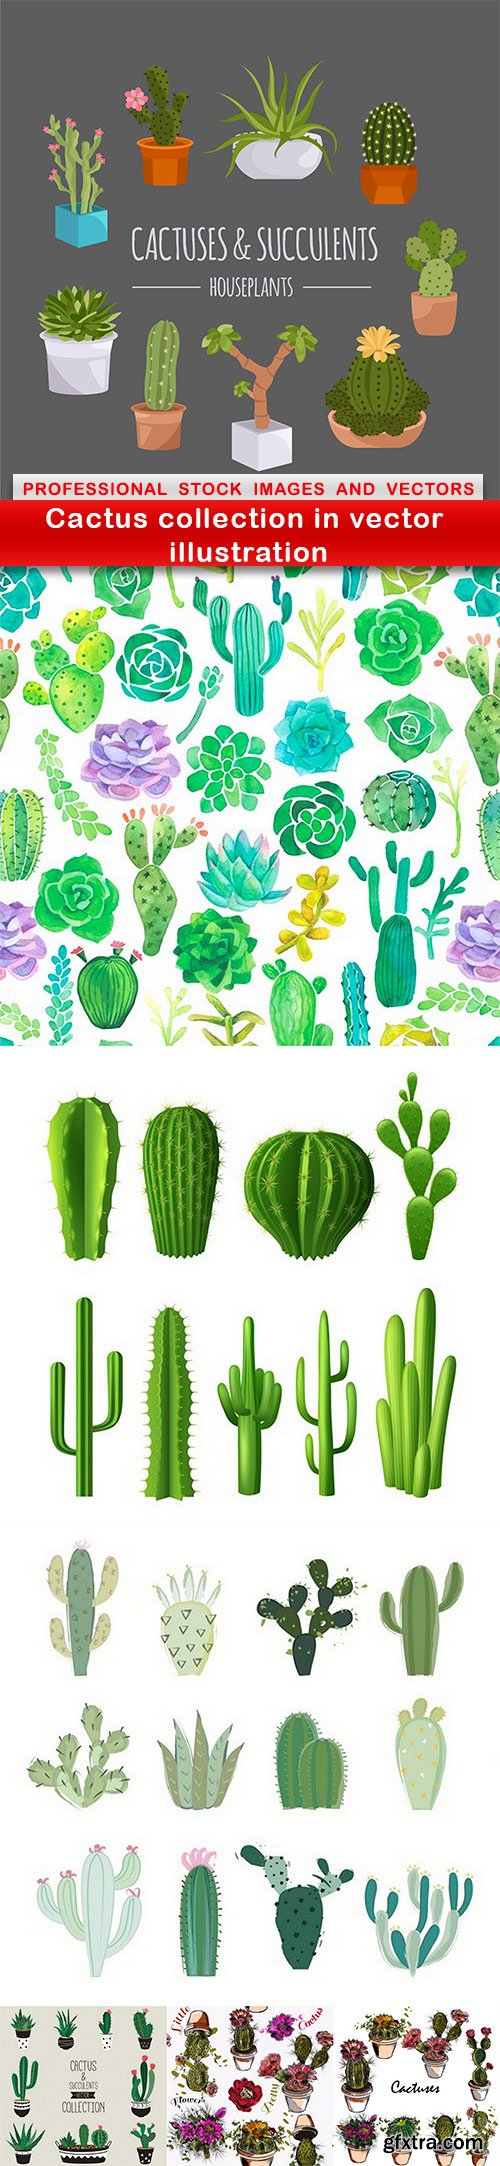 Cactus collection in vector illustration - 7 EPS